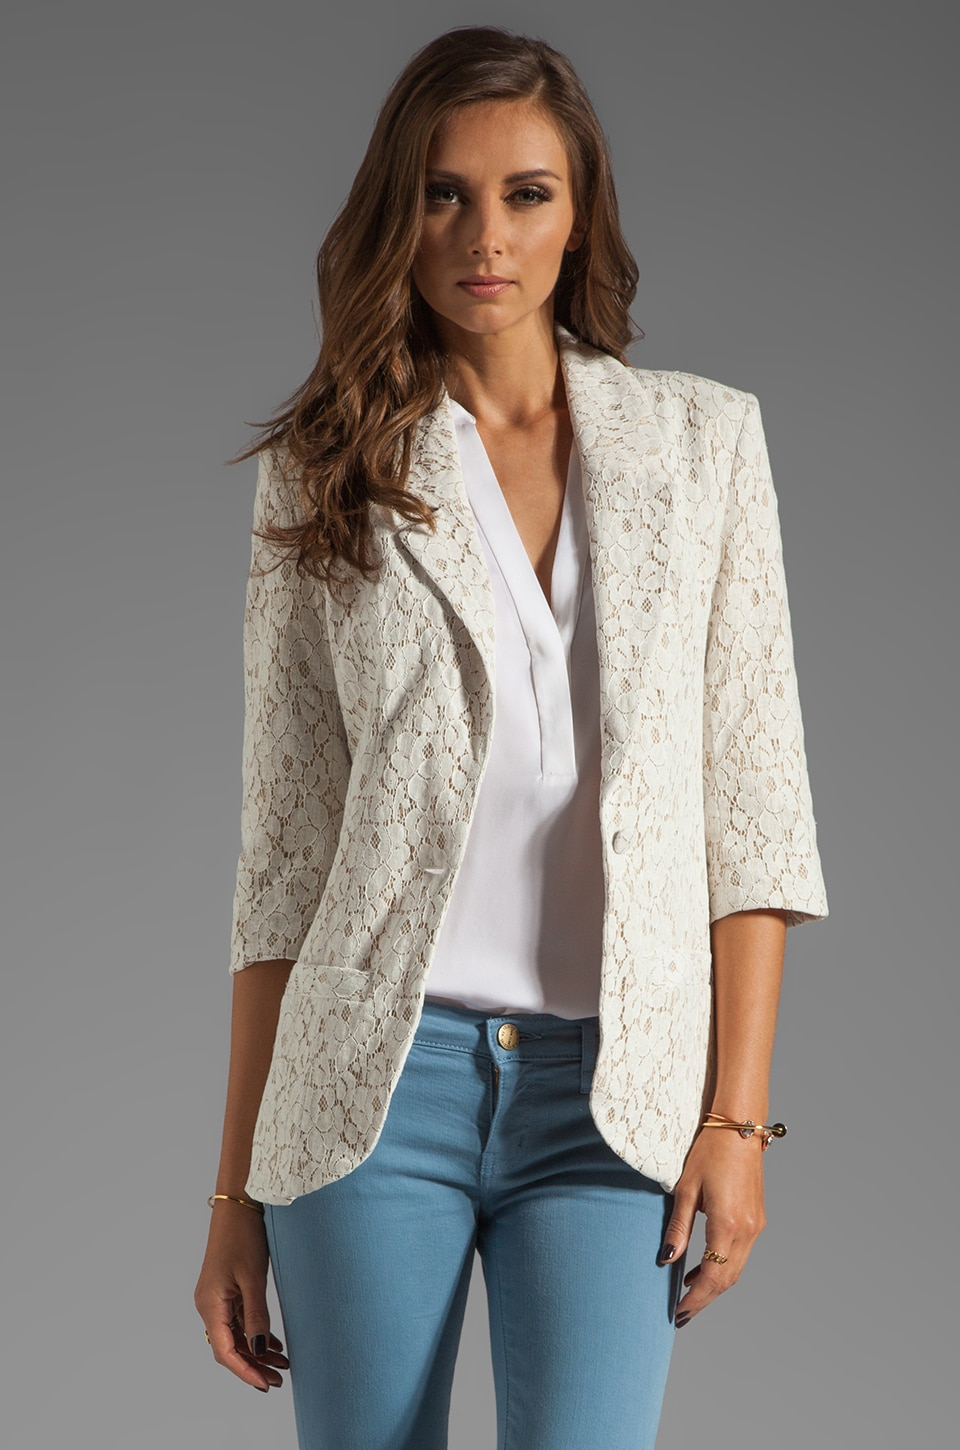 Central Park West Nantucket Blazer in Ivory